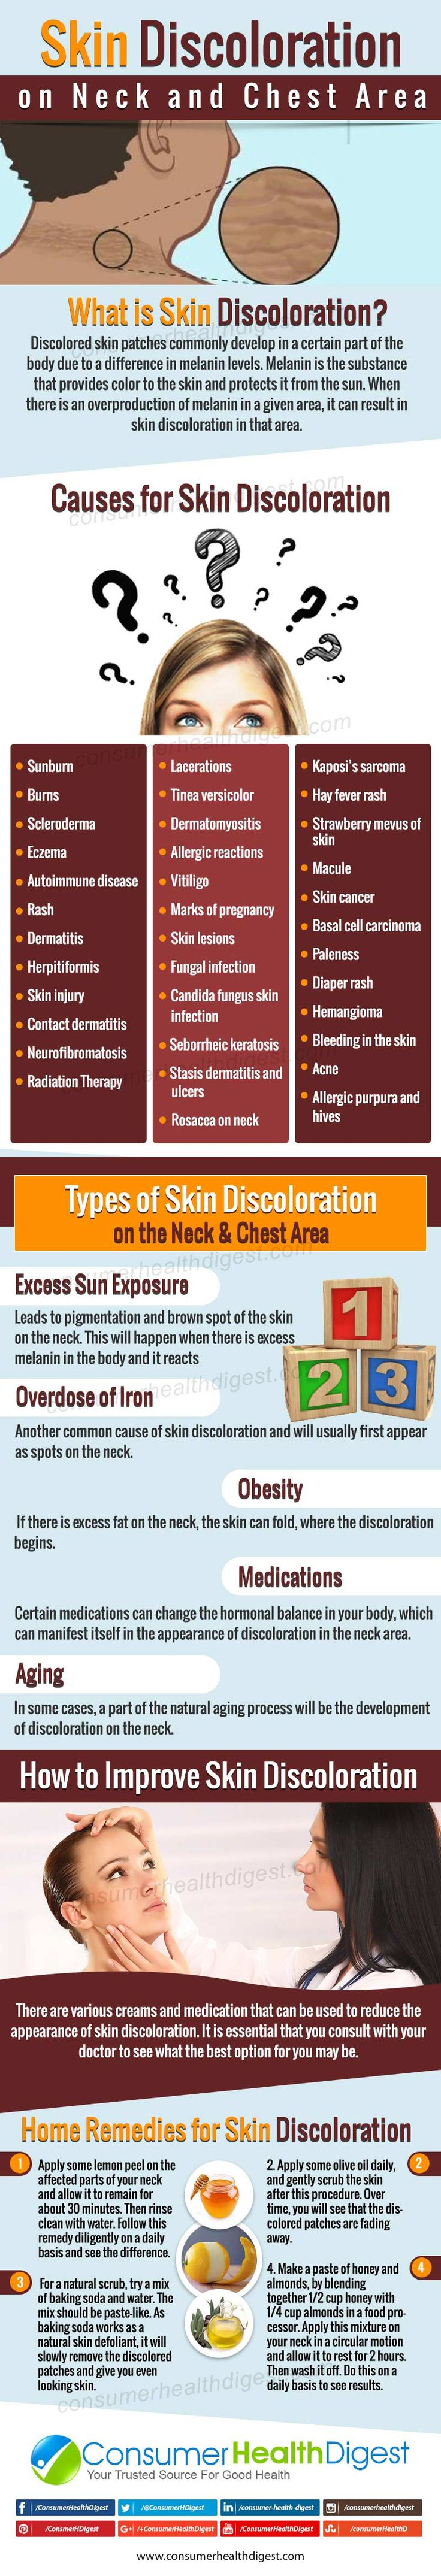 #SkinDiscoloration on Neck and Chest Area – What You Must Know  More info on: https://www.consumerhealthdigest.com/neck-care-center/skin-discoloration-on-neck.html #skincare